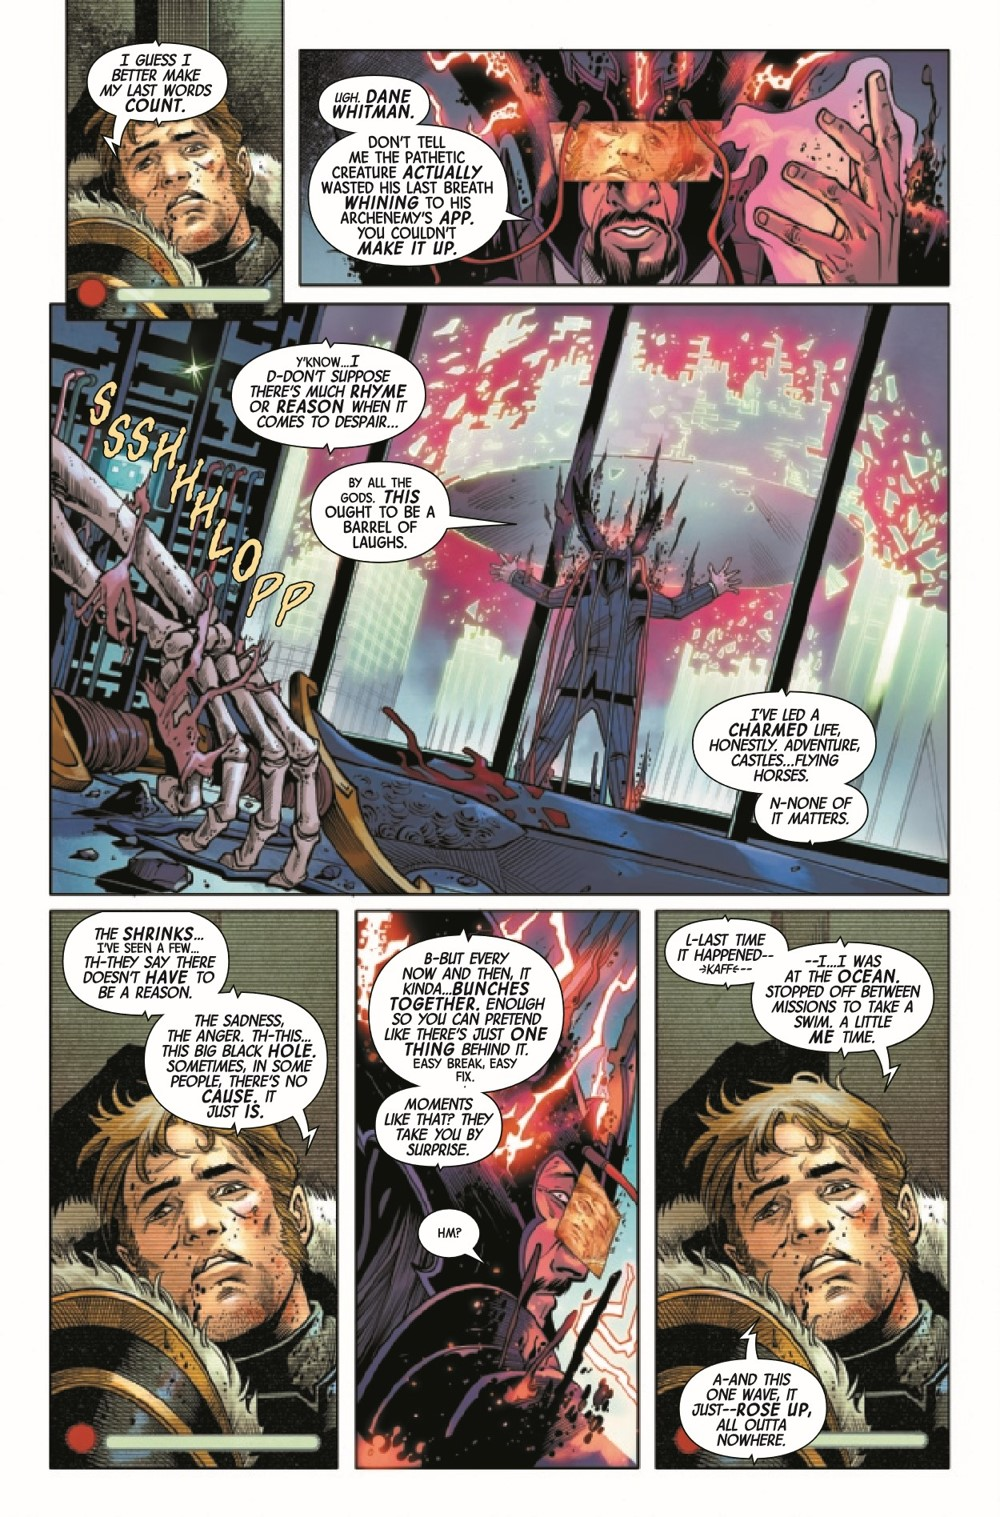 BLKKNGHTCURSE2021005_Preview-6 ComicList Previews: BLACK KNIGHT CURSE OF THE EBONY BLADE #5 (OF 5)